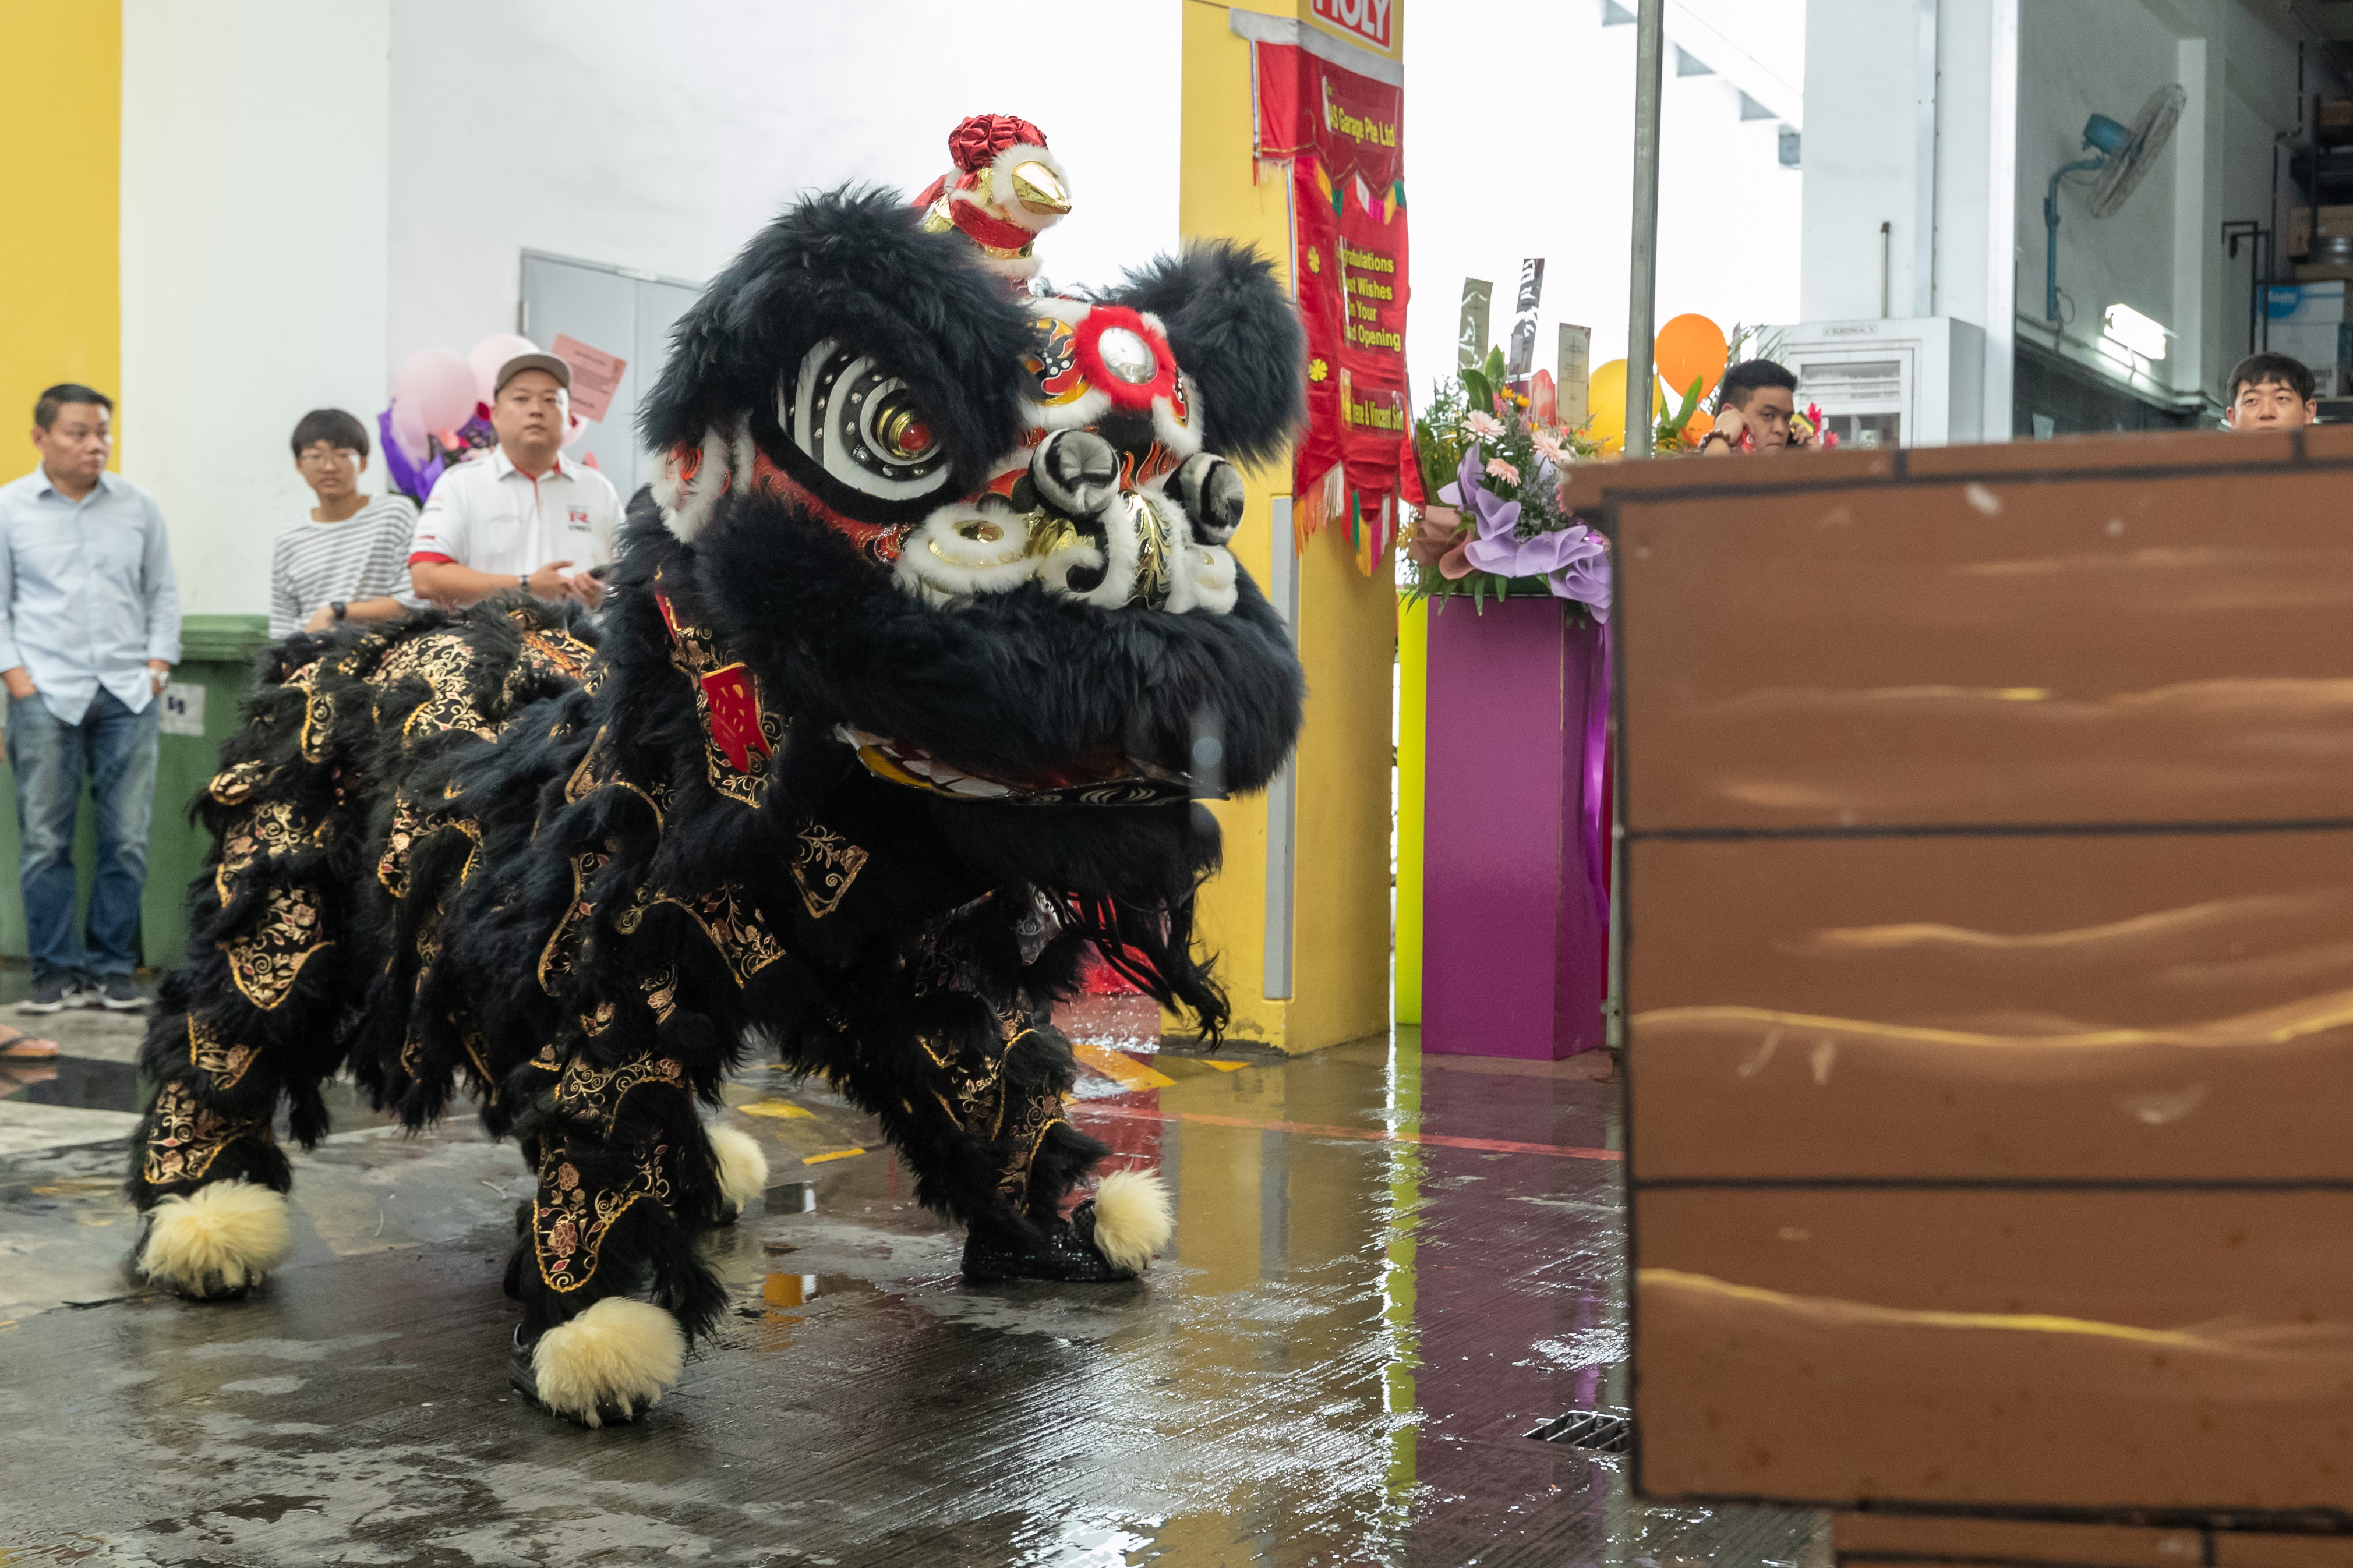 TONG YI LION DANCE TROUPE